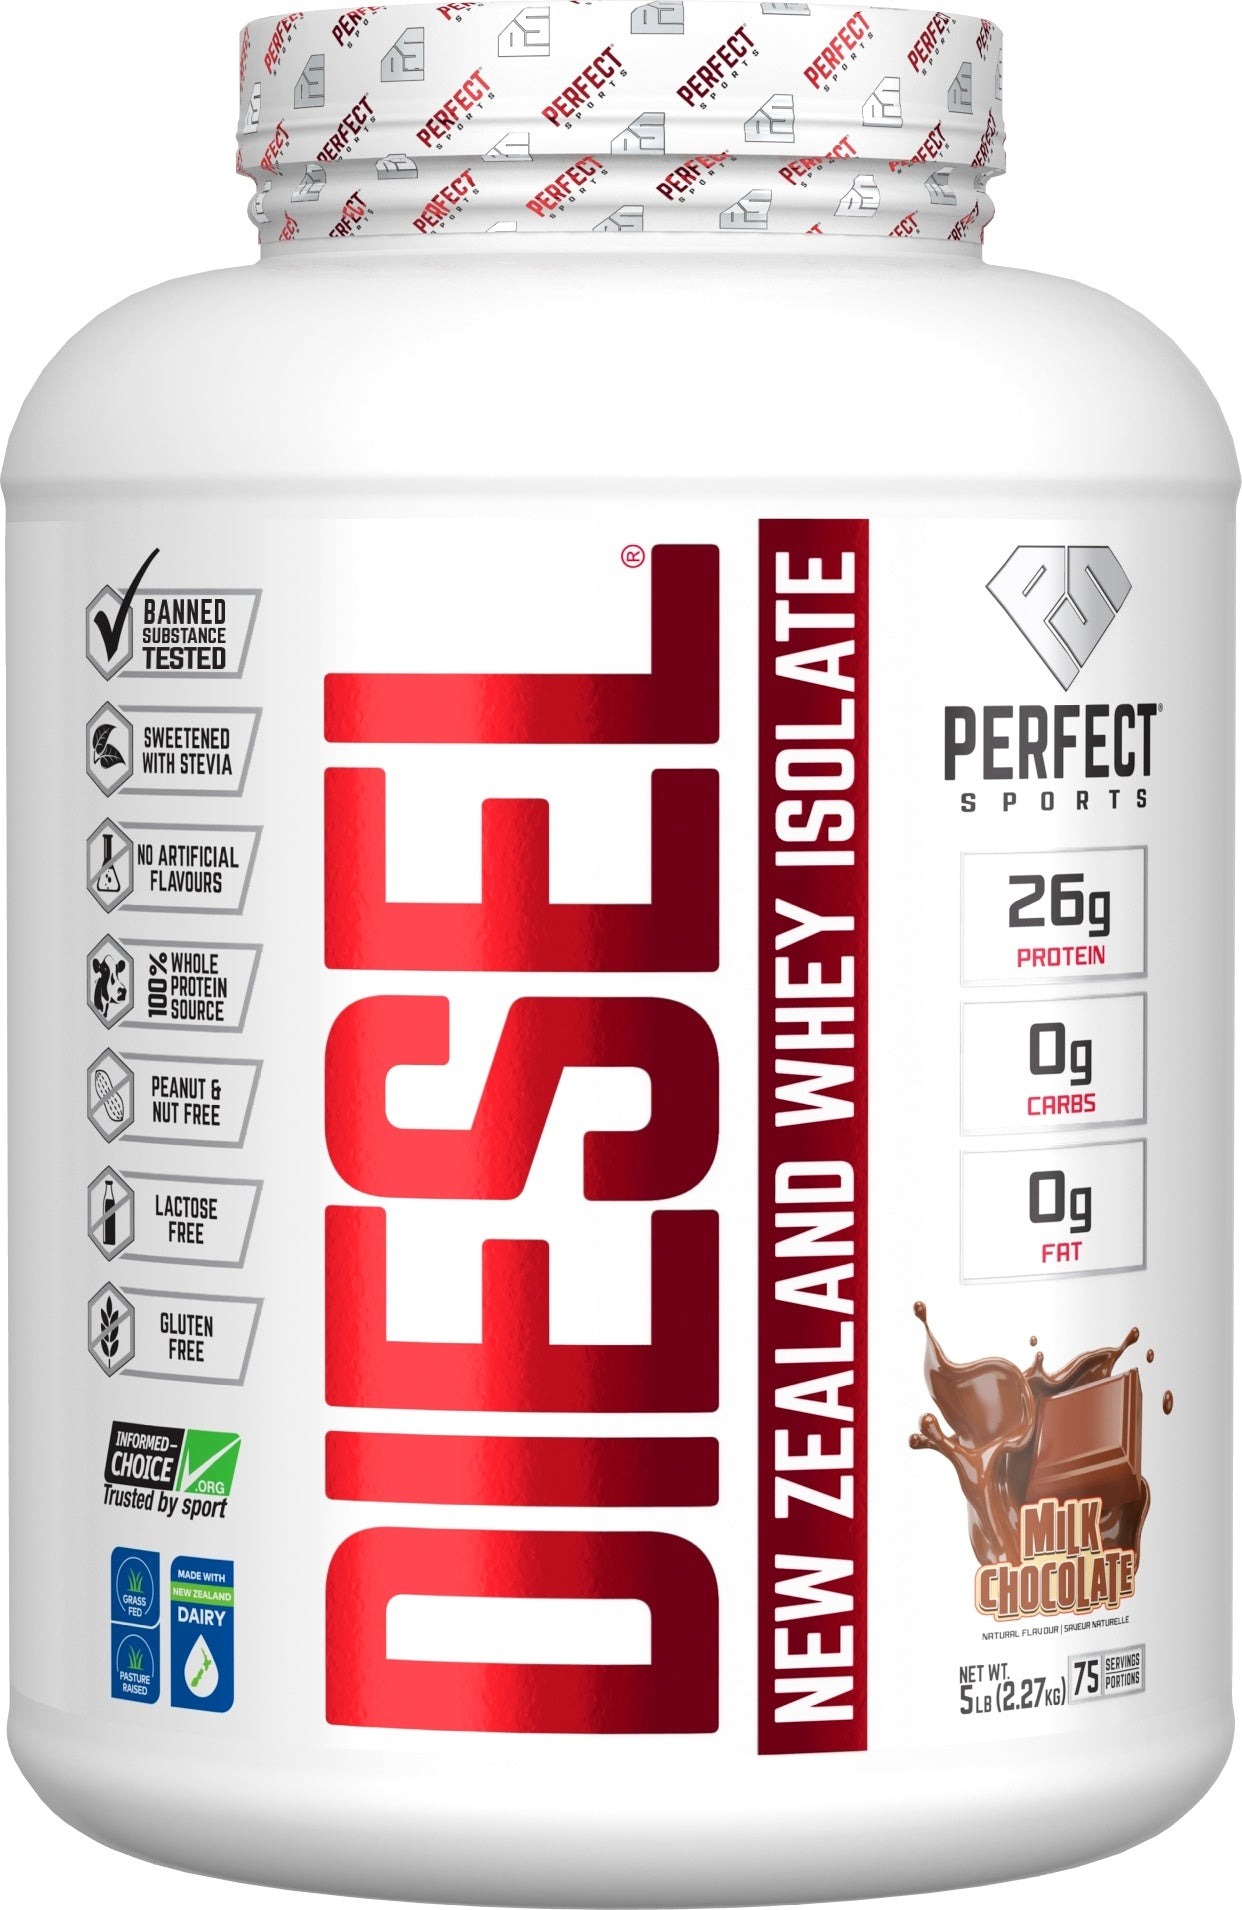 Supplements & Vitamins - Perfect Sports - Diesel Milk Chocolate Whey Isolate, 5lbs